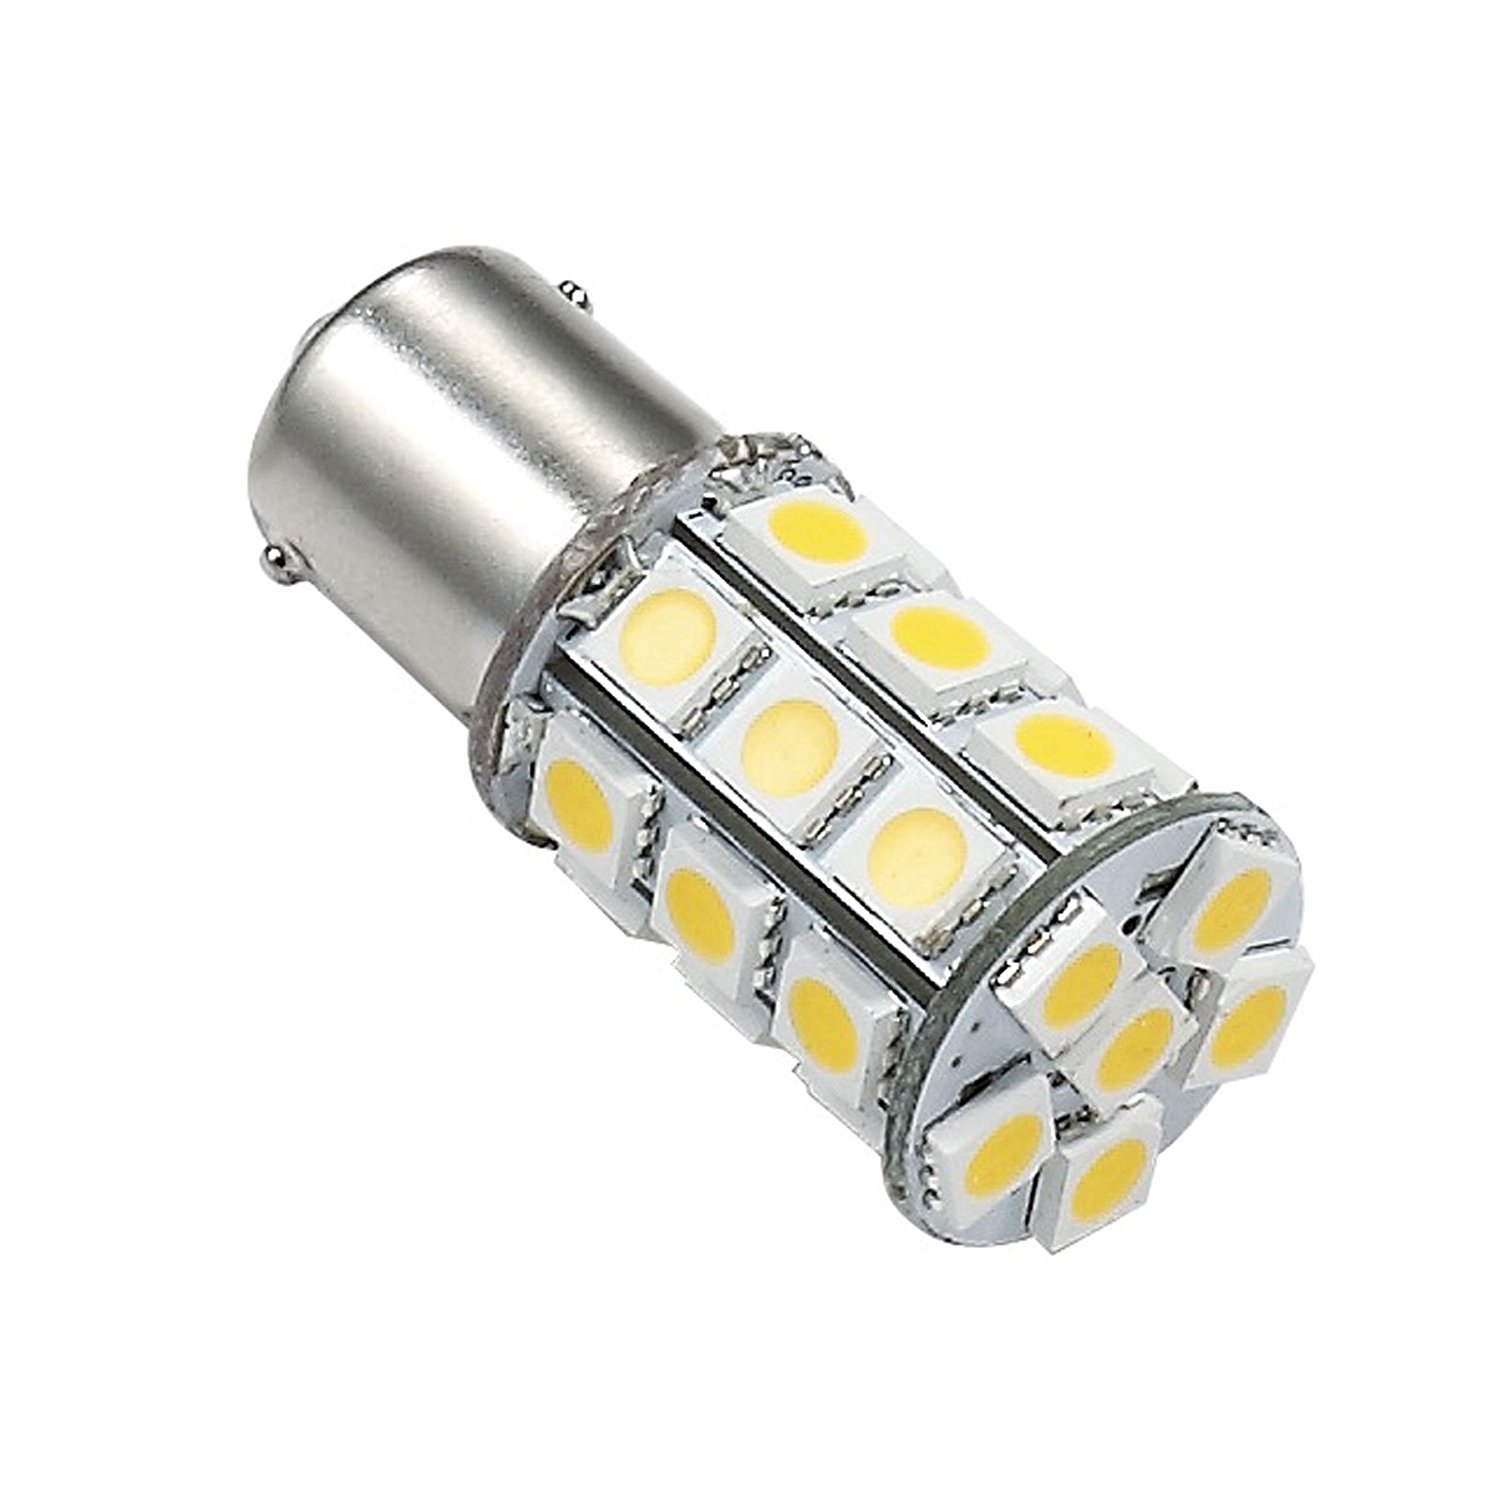 LED Replacement Light Bulb Base Tower